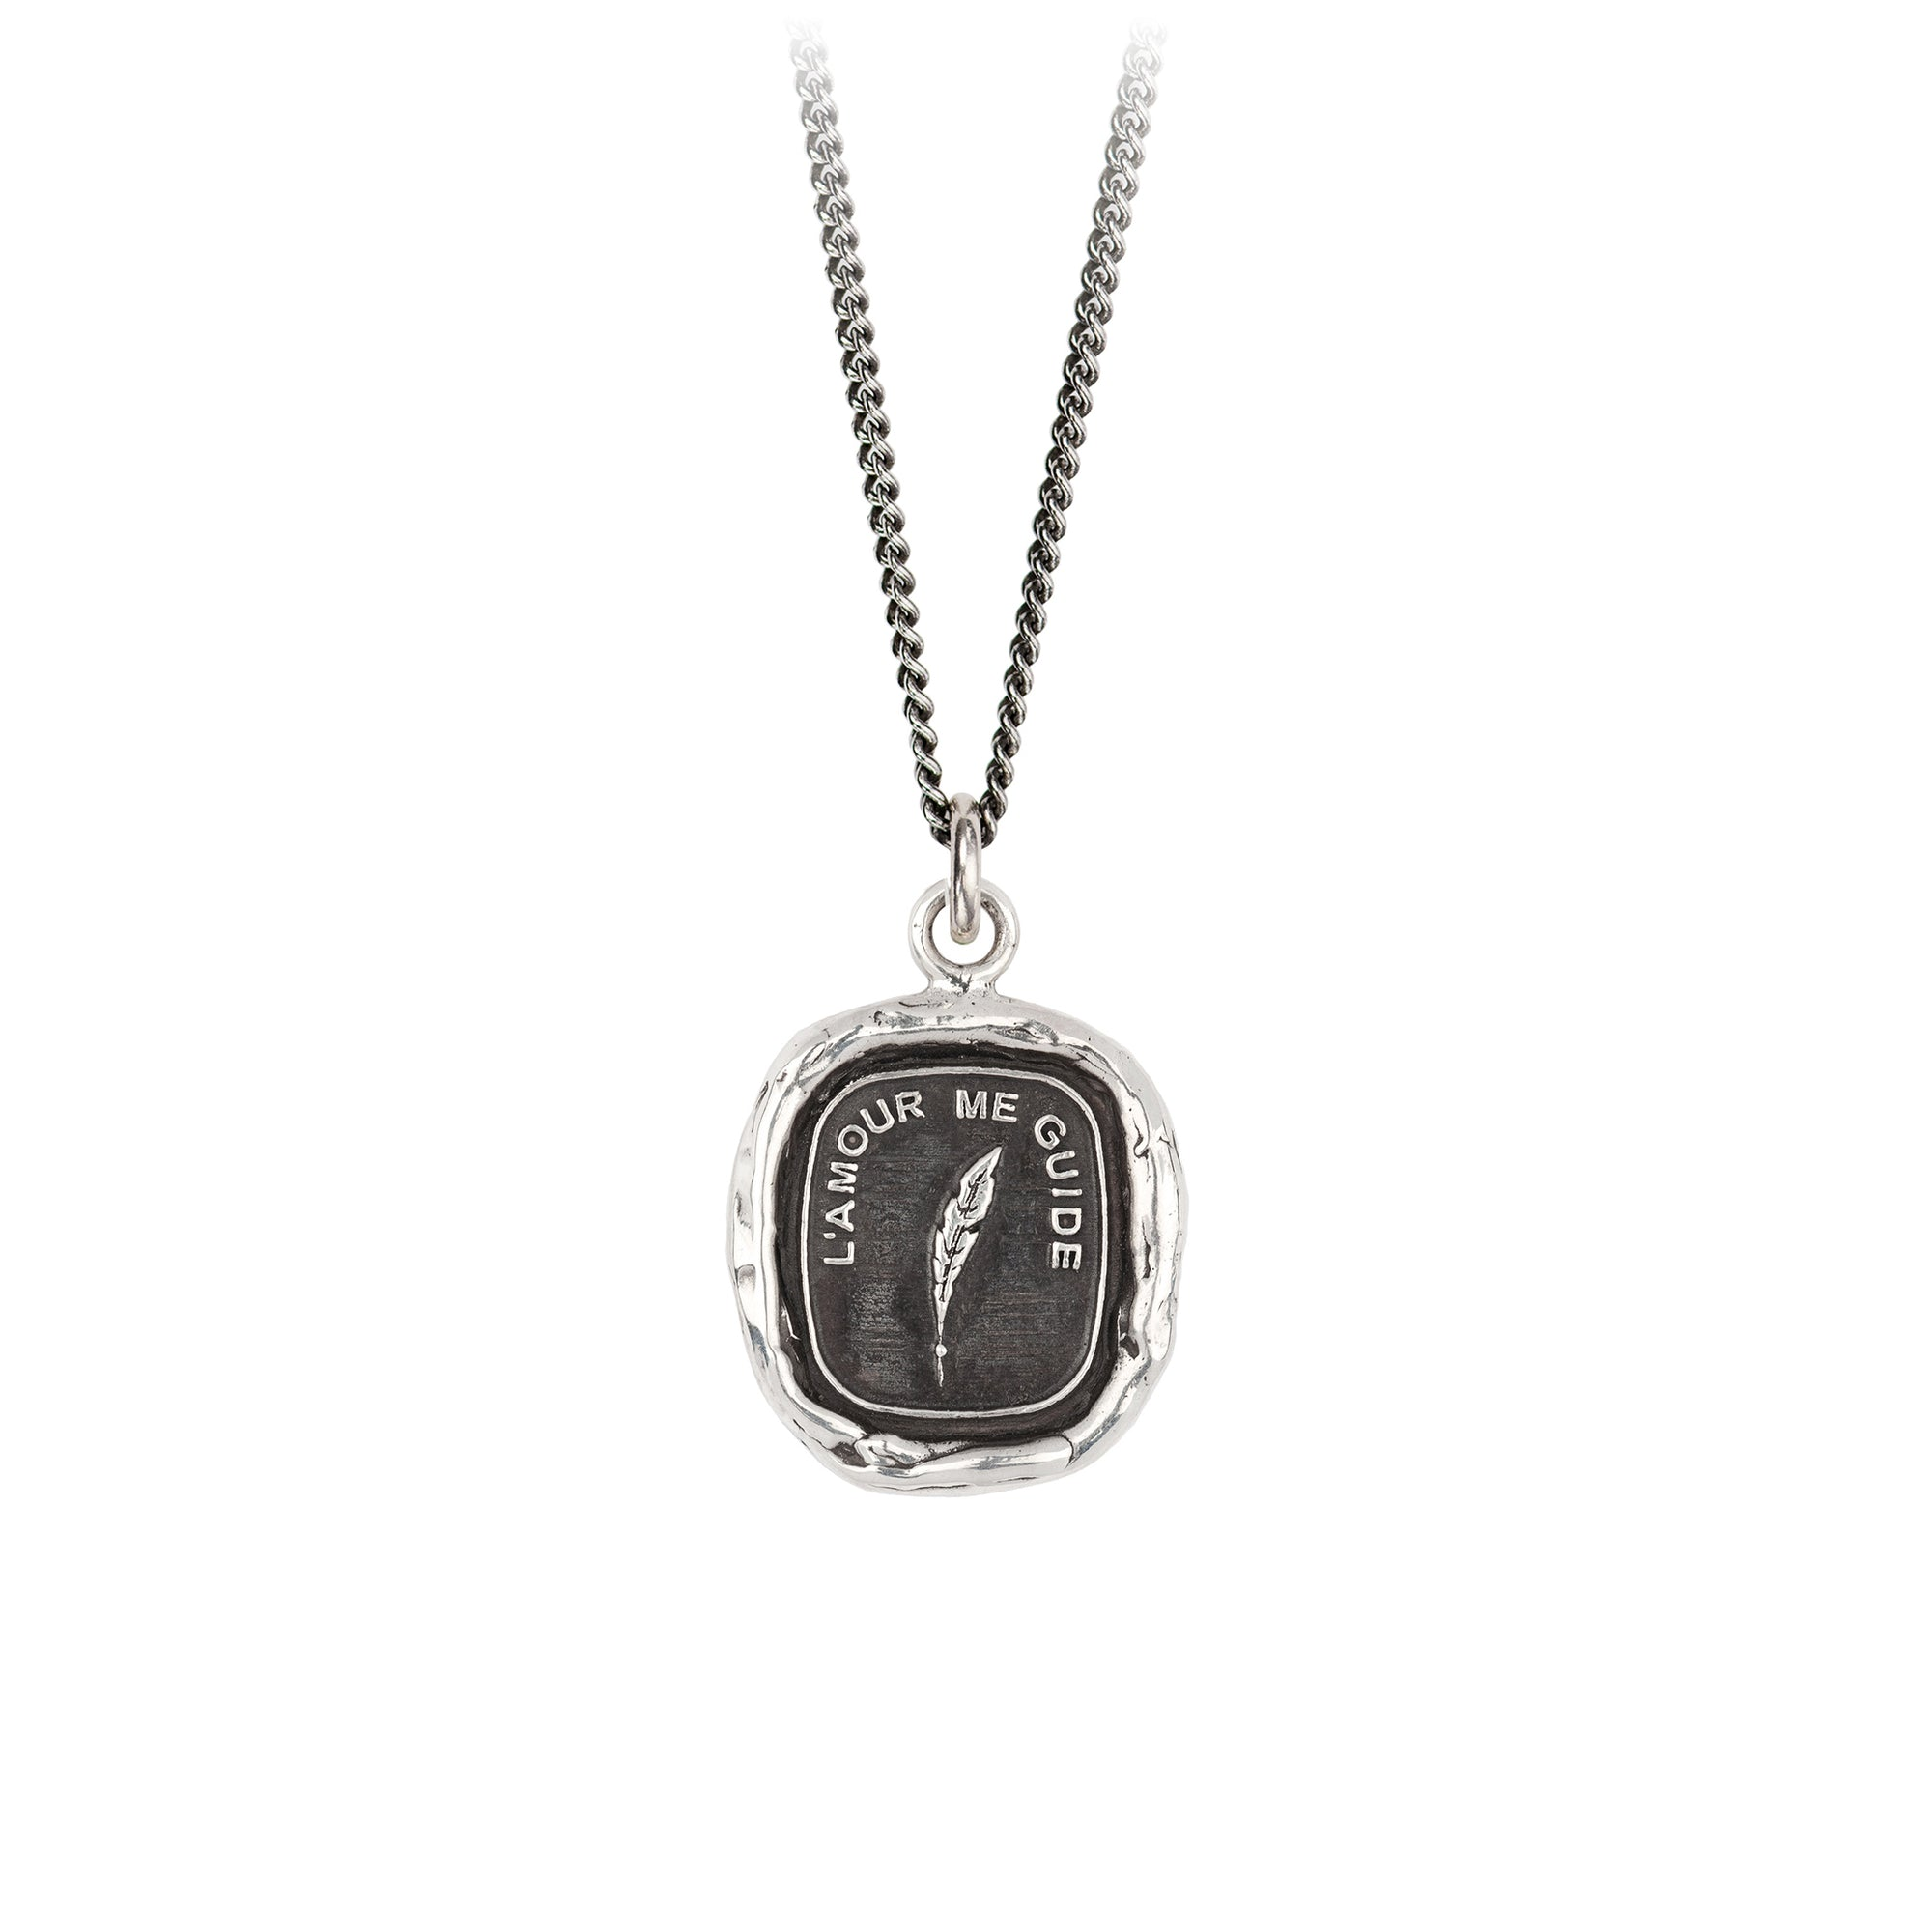 Pyrrha Love Guides Me Talisman Necklace Fine Curb Chain Silver